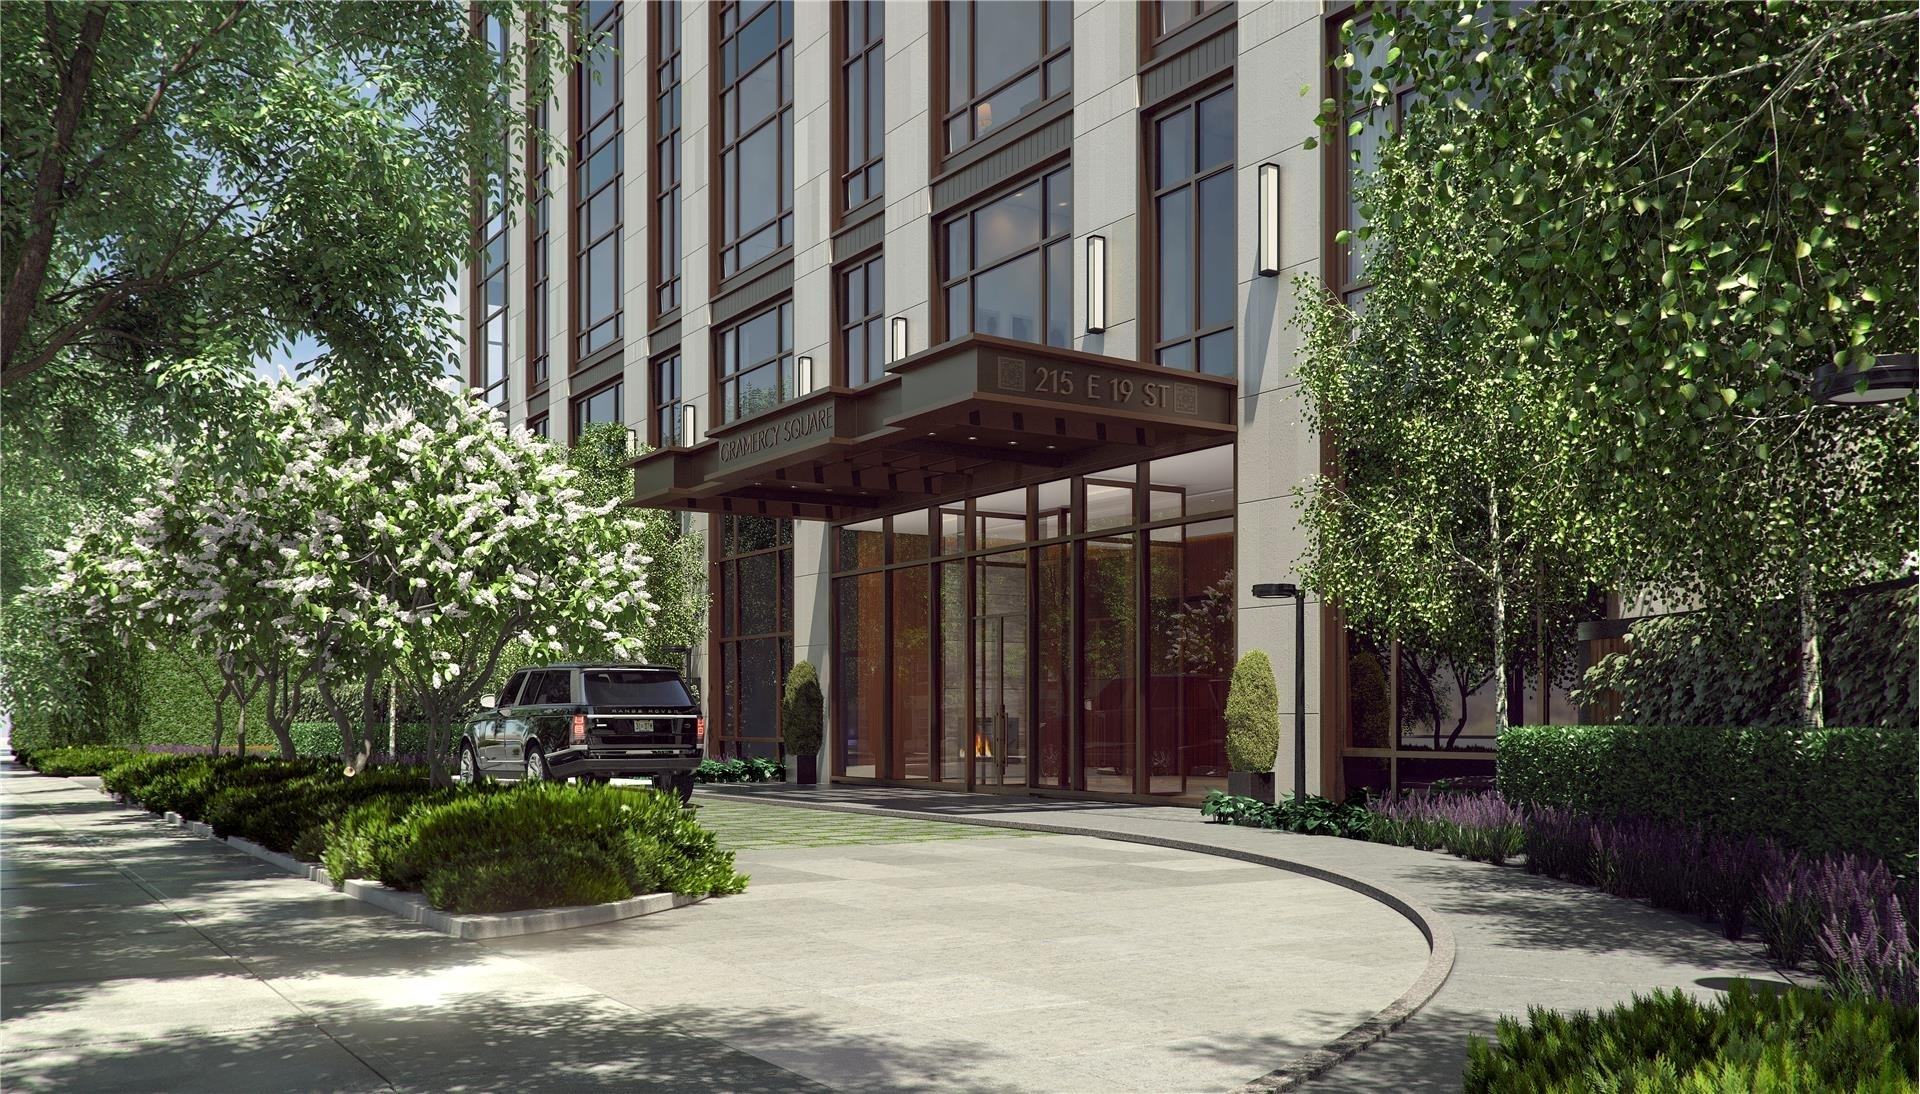 3. Condominiums for Sale at Gramercy Square, 215 East 19th St, 16C Gramercy Park, New York, NY 10003